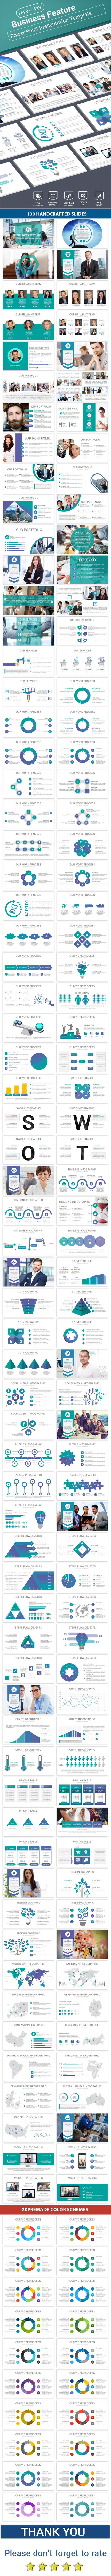 Business Feature PowerPoint Presentation Template - PowerPoint Templates Presentation Templates